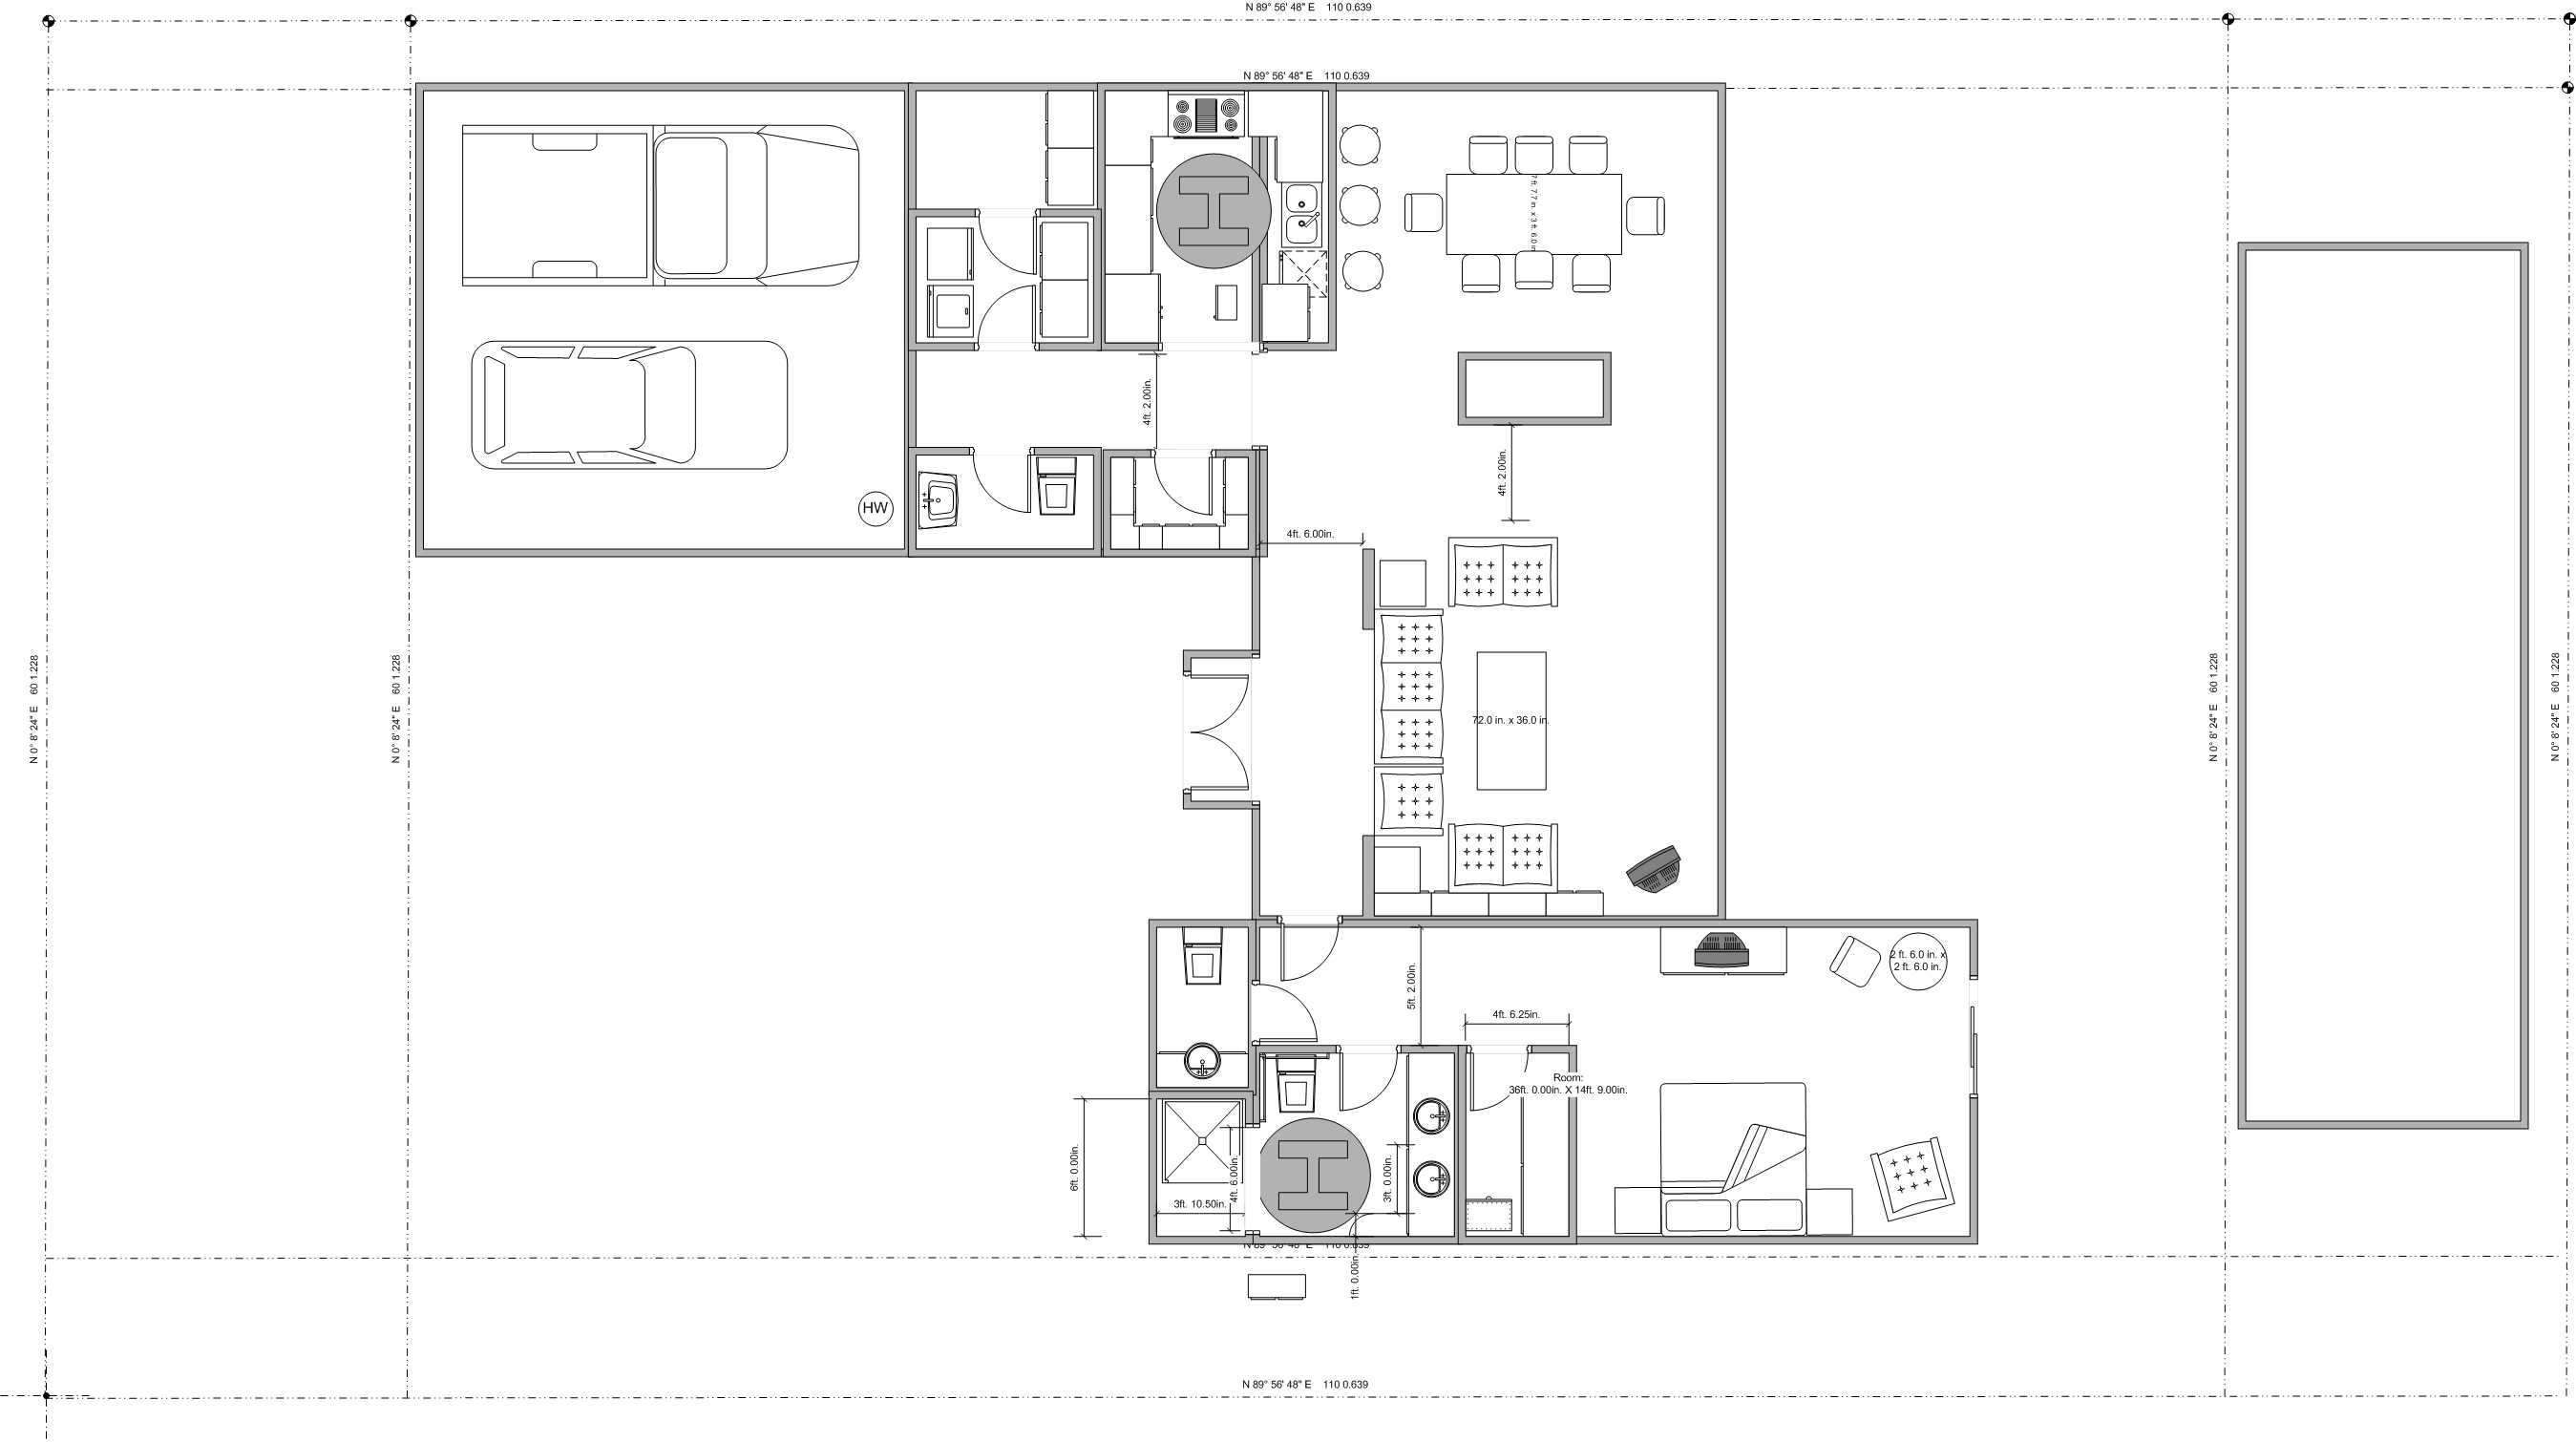 000205 on Two Bedroom Plan Design